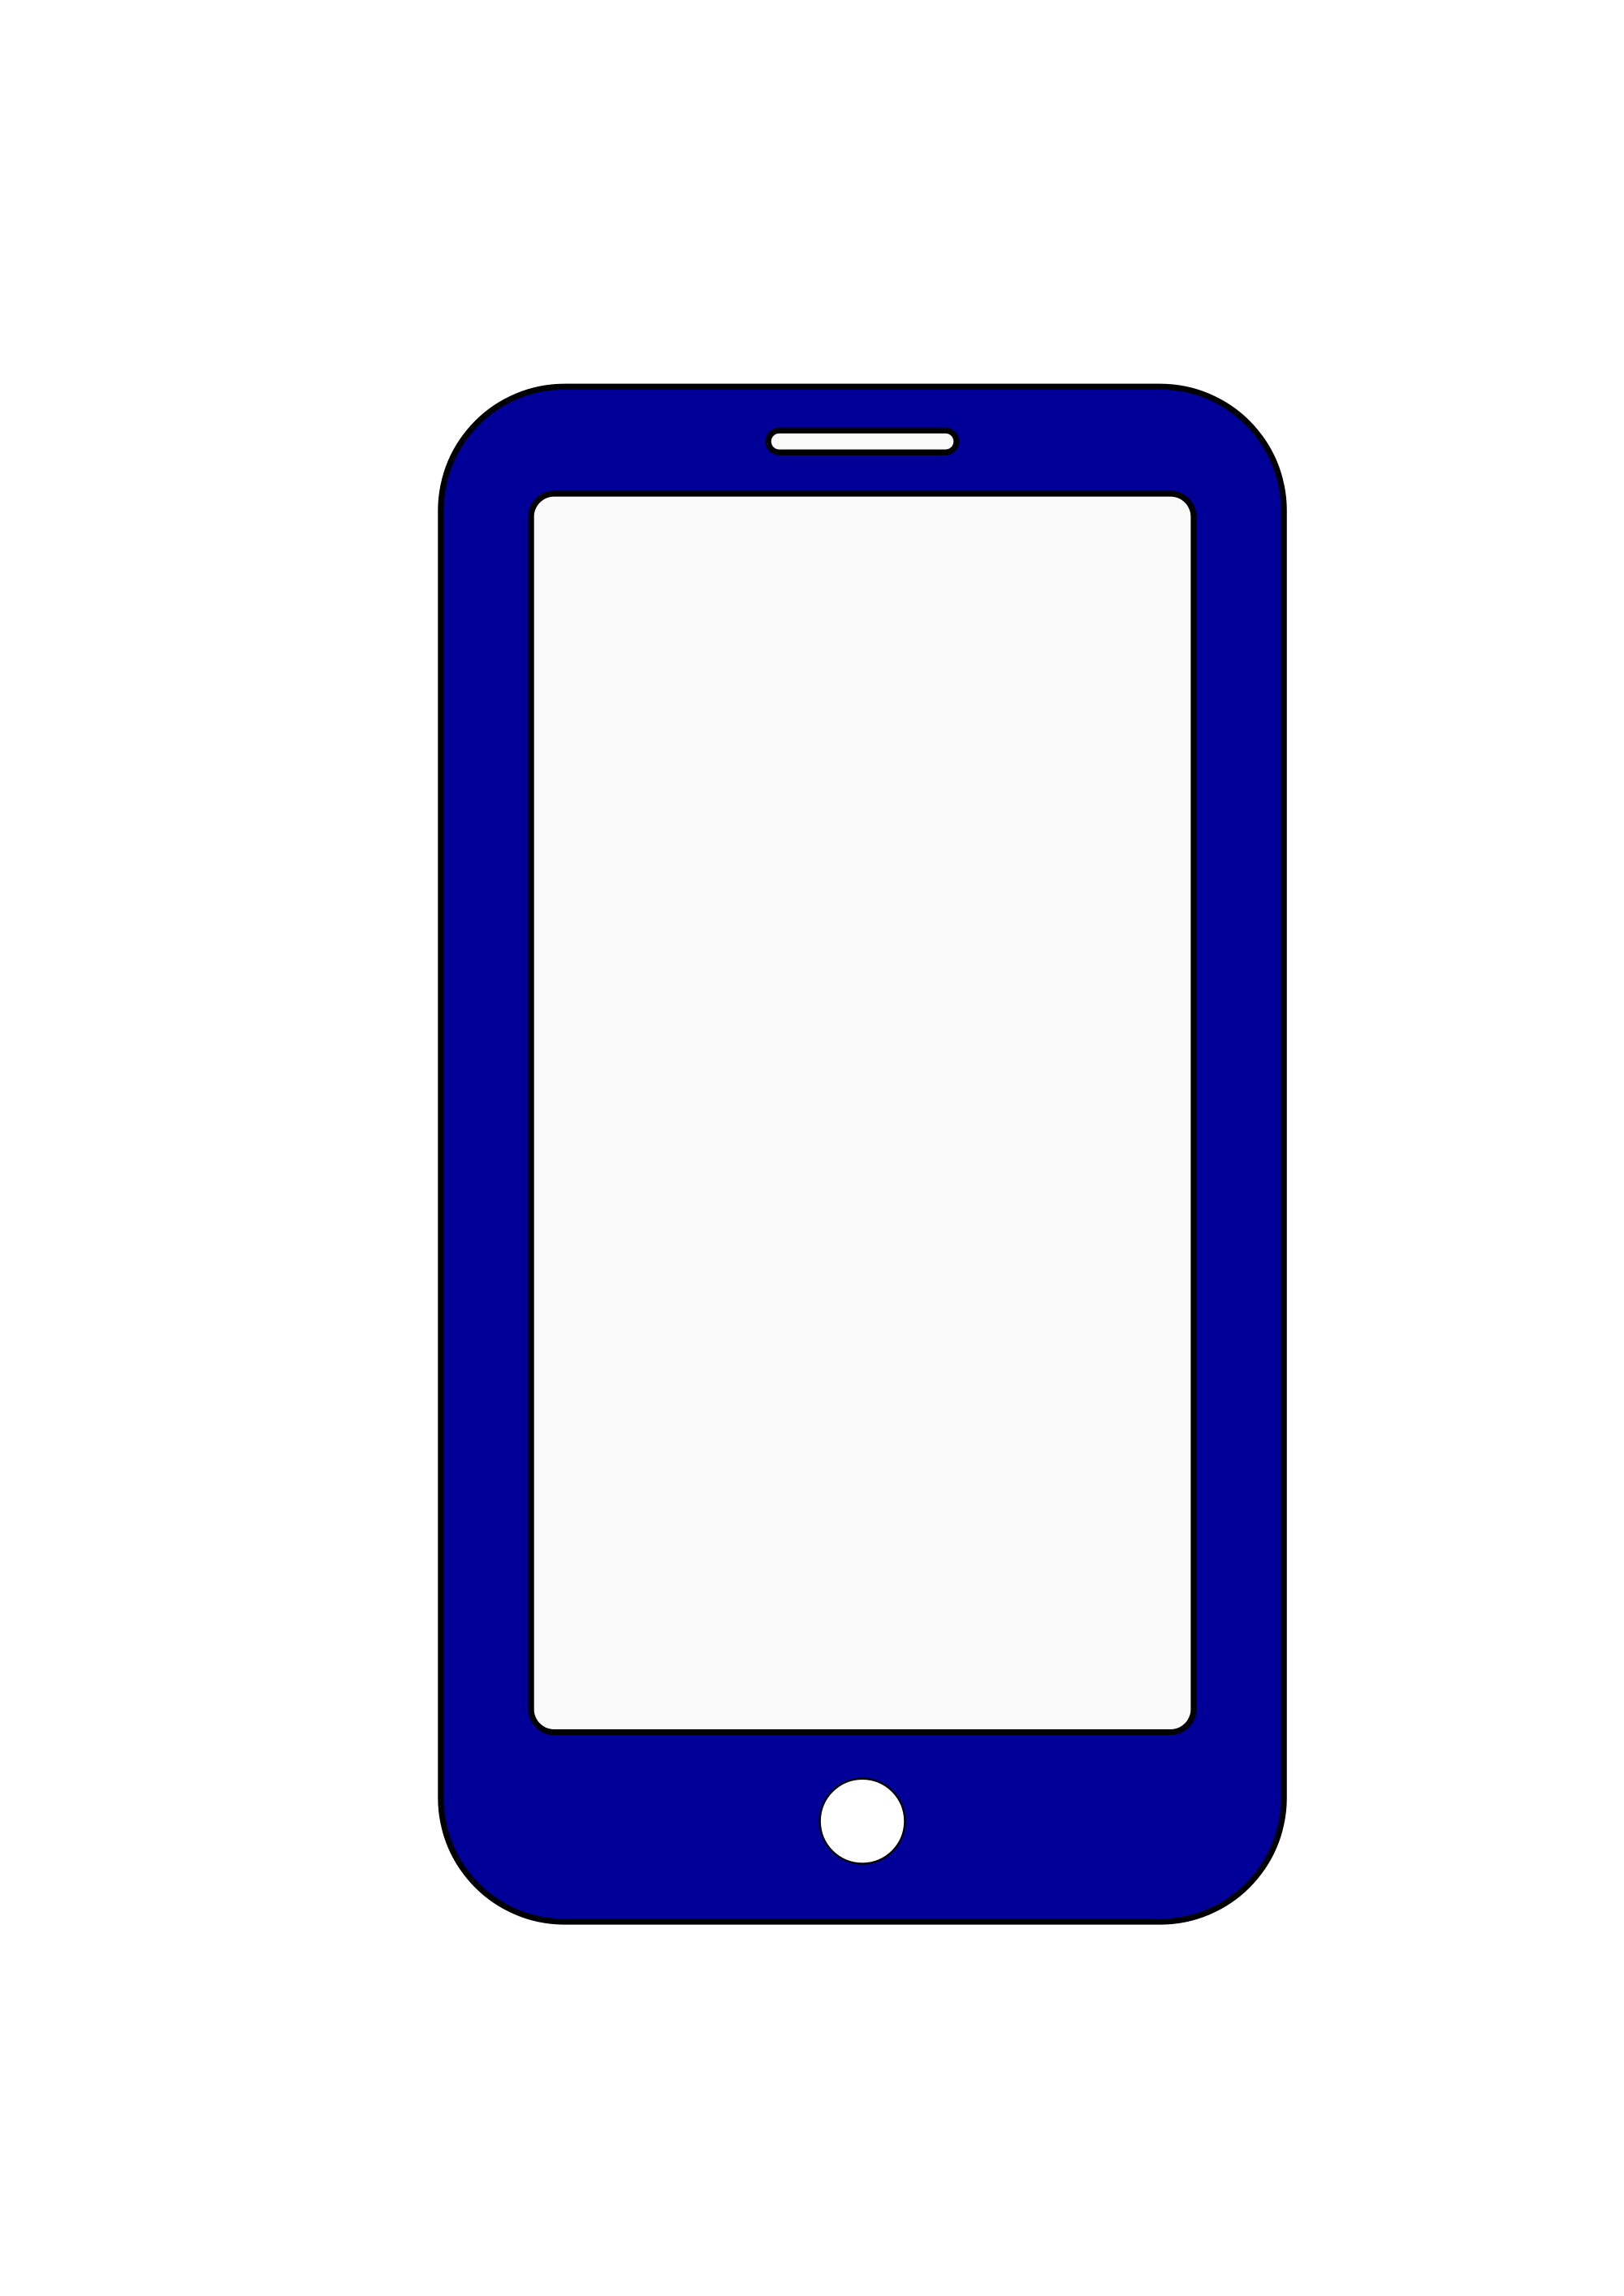 Engineer clipart icon. File smartphone svg wikimedia